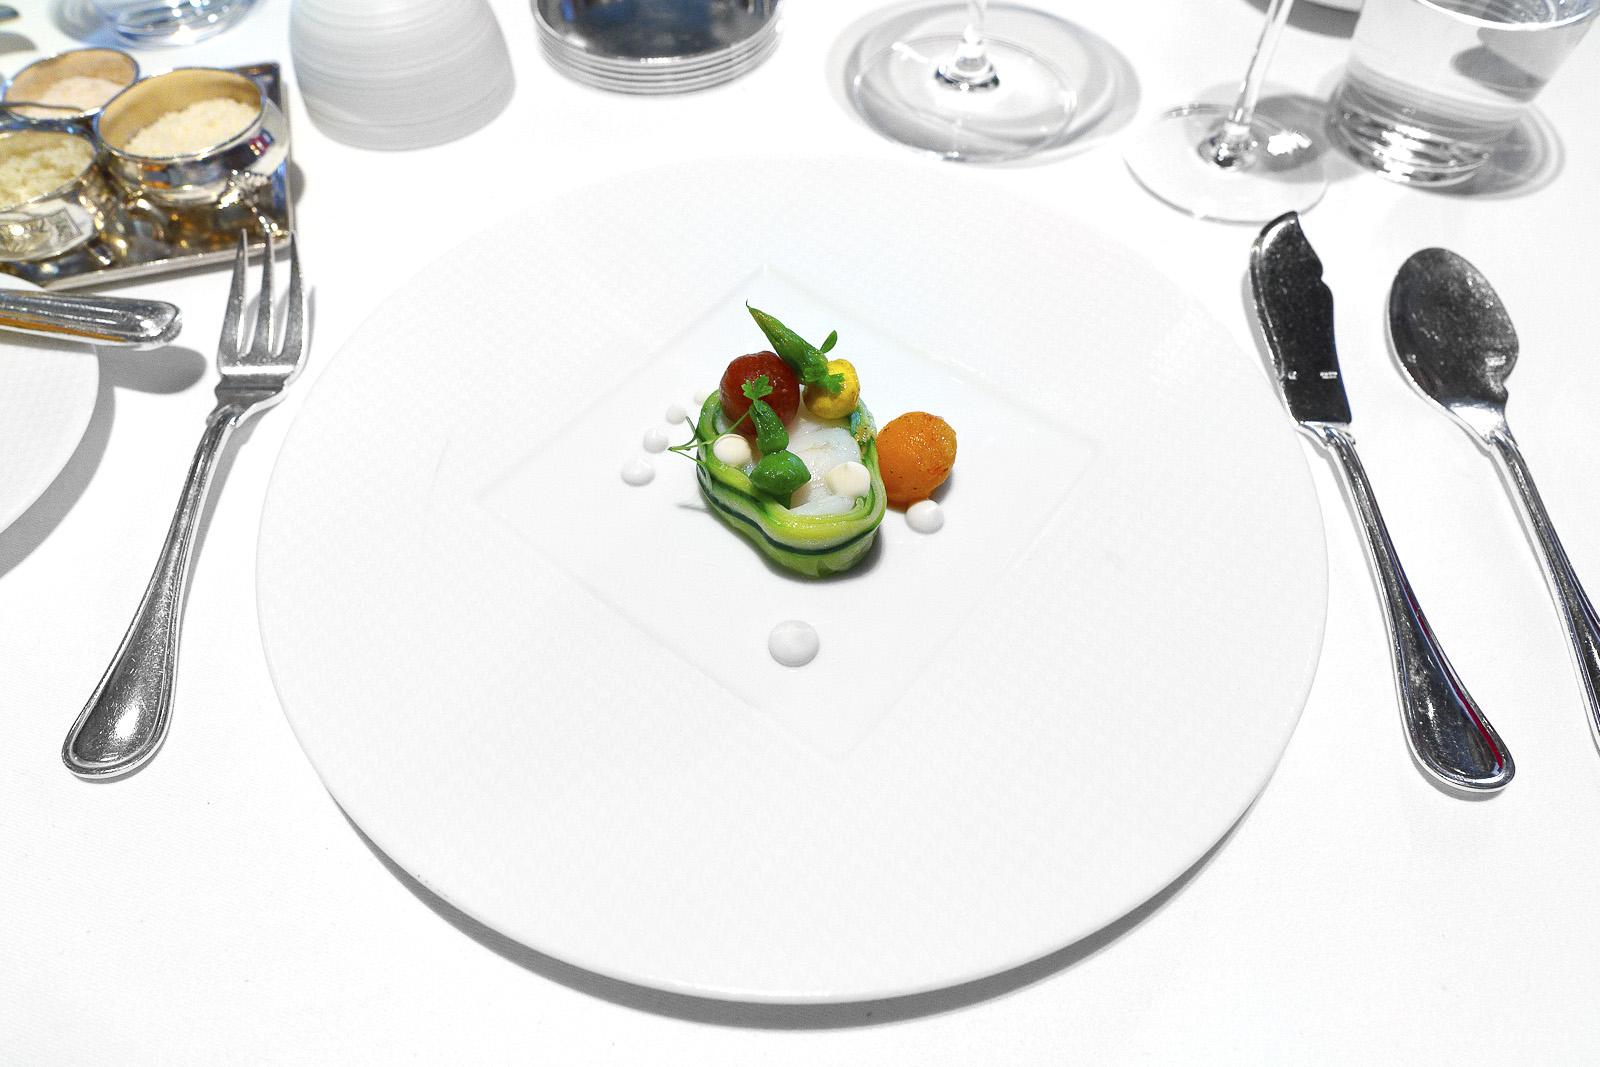 """4th Course - Atlantic Cod """"Confit à la Minute,"""" Summer Squash, Toybox Tomatoes, Parsley and Sweet Garlic Cream"""